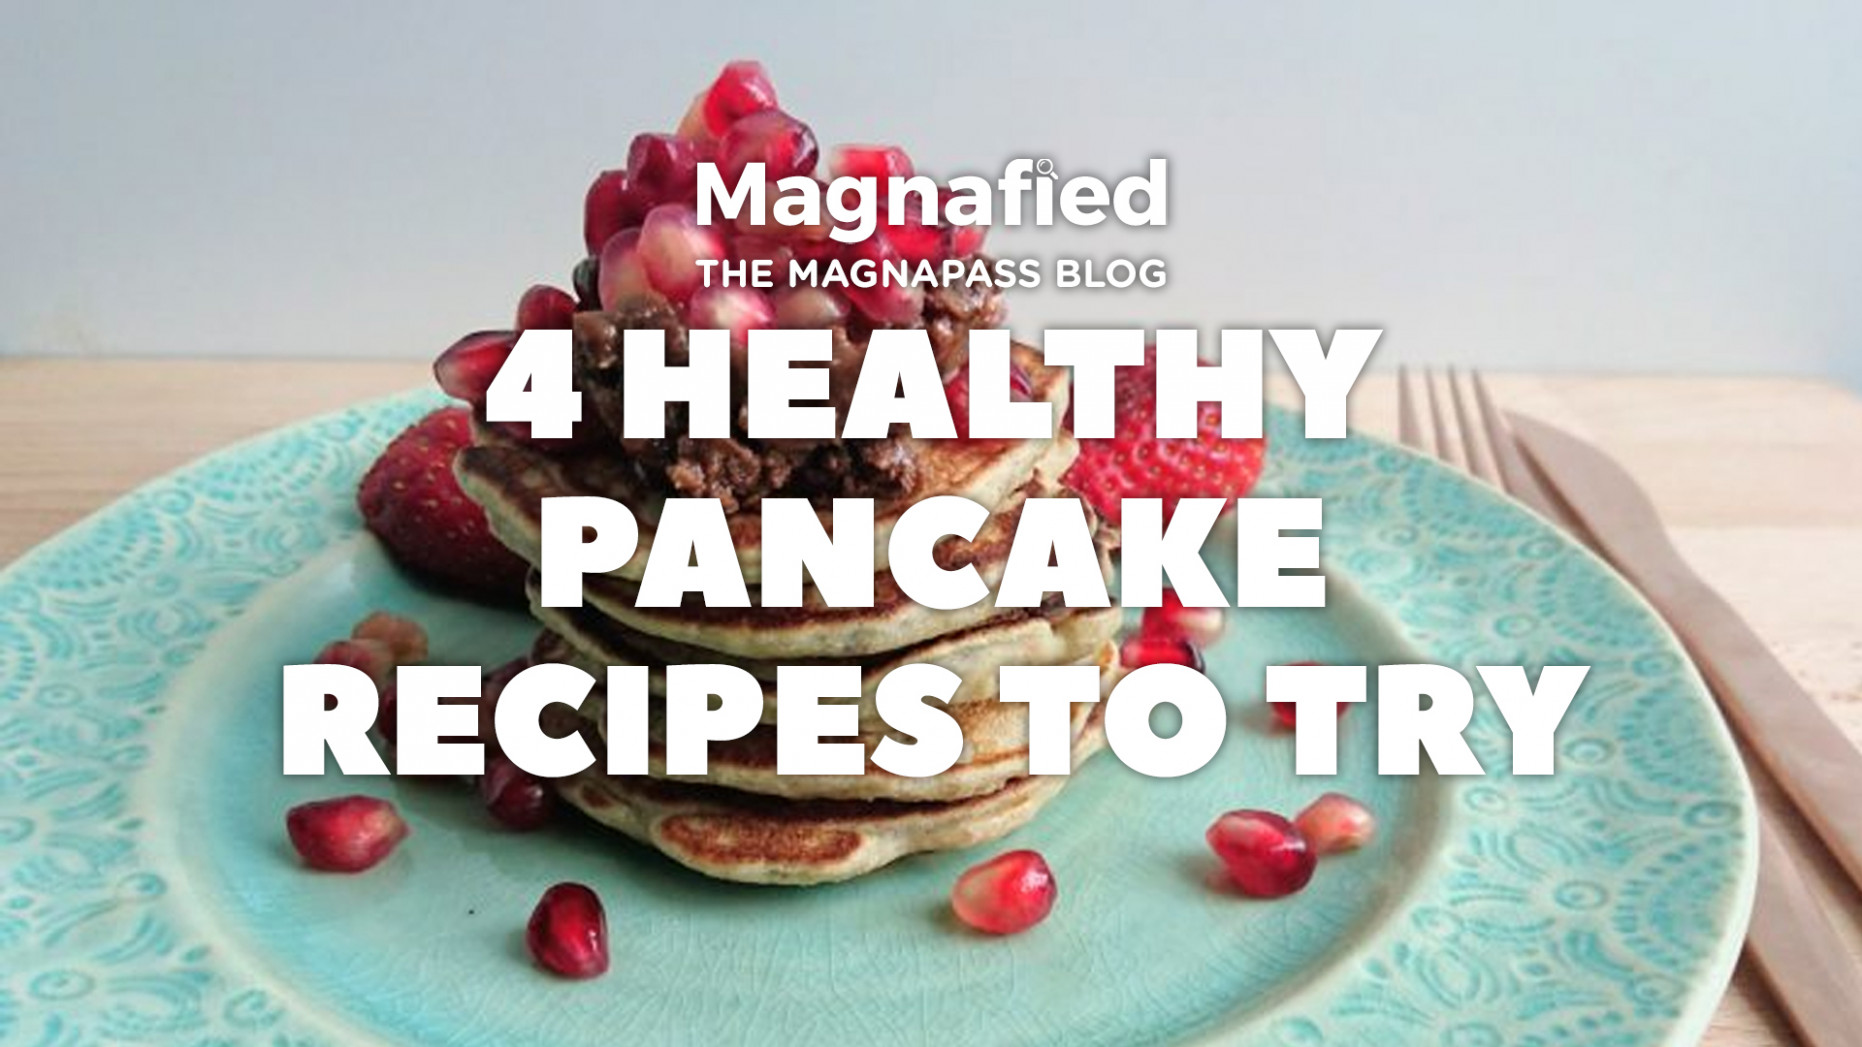 14 Healthy Pancake Recipes | Magnafied - tom kerridge healthy recipes